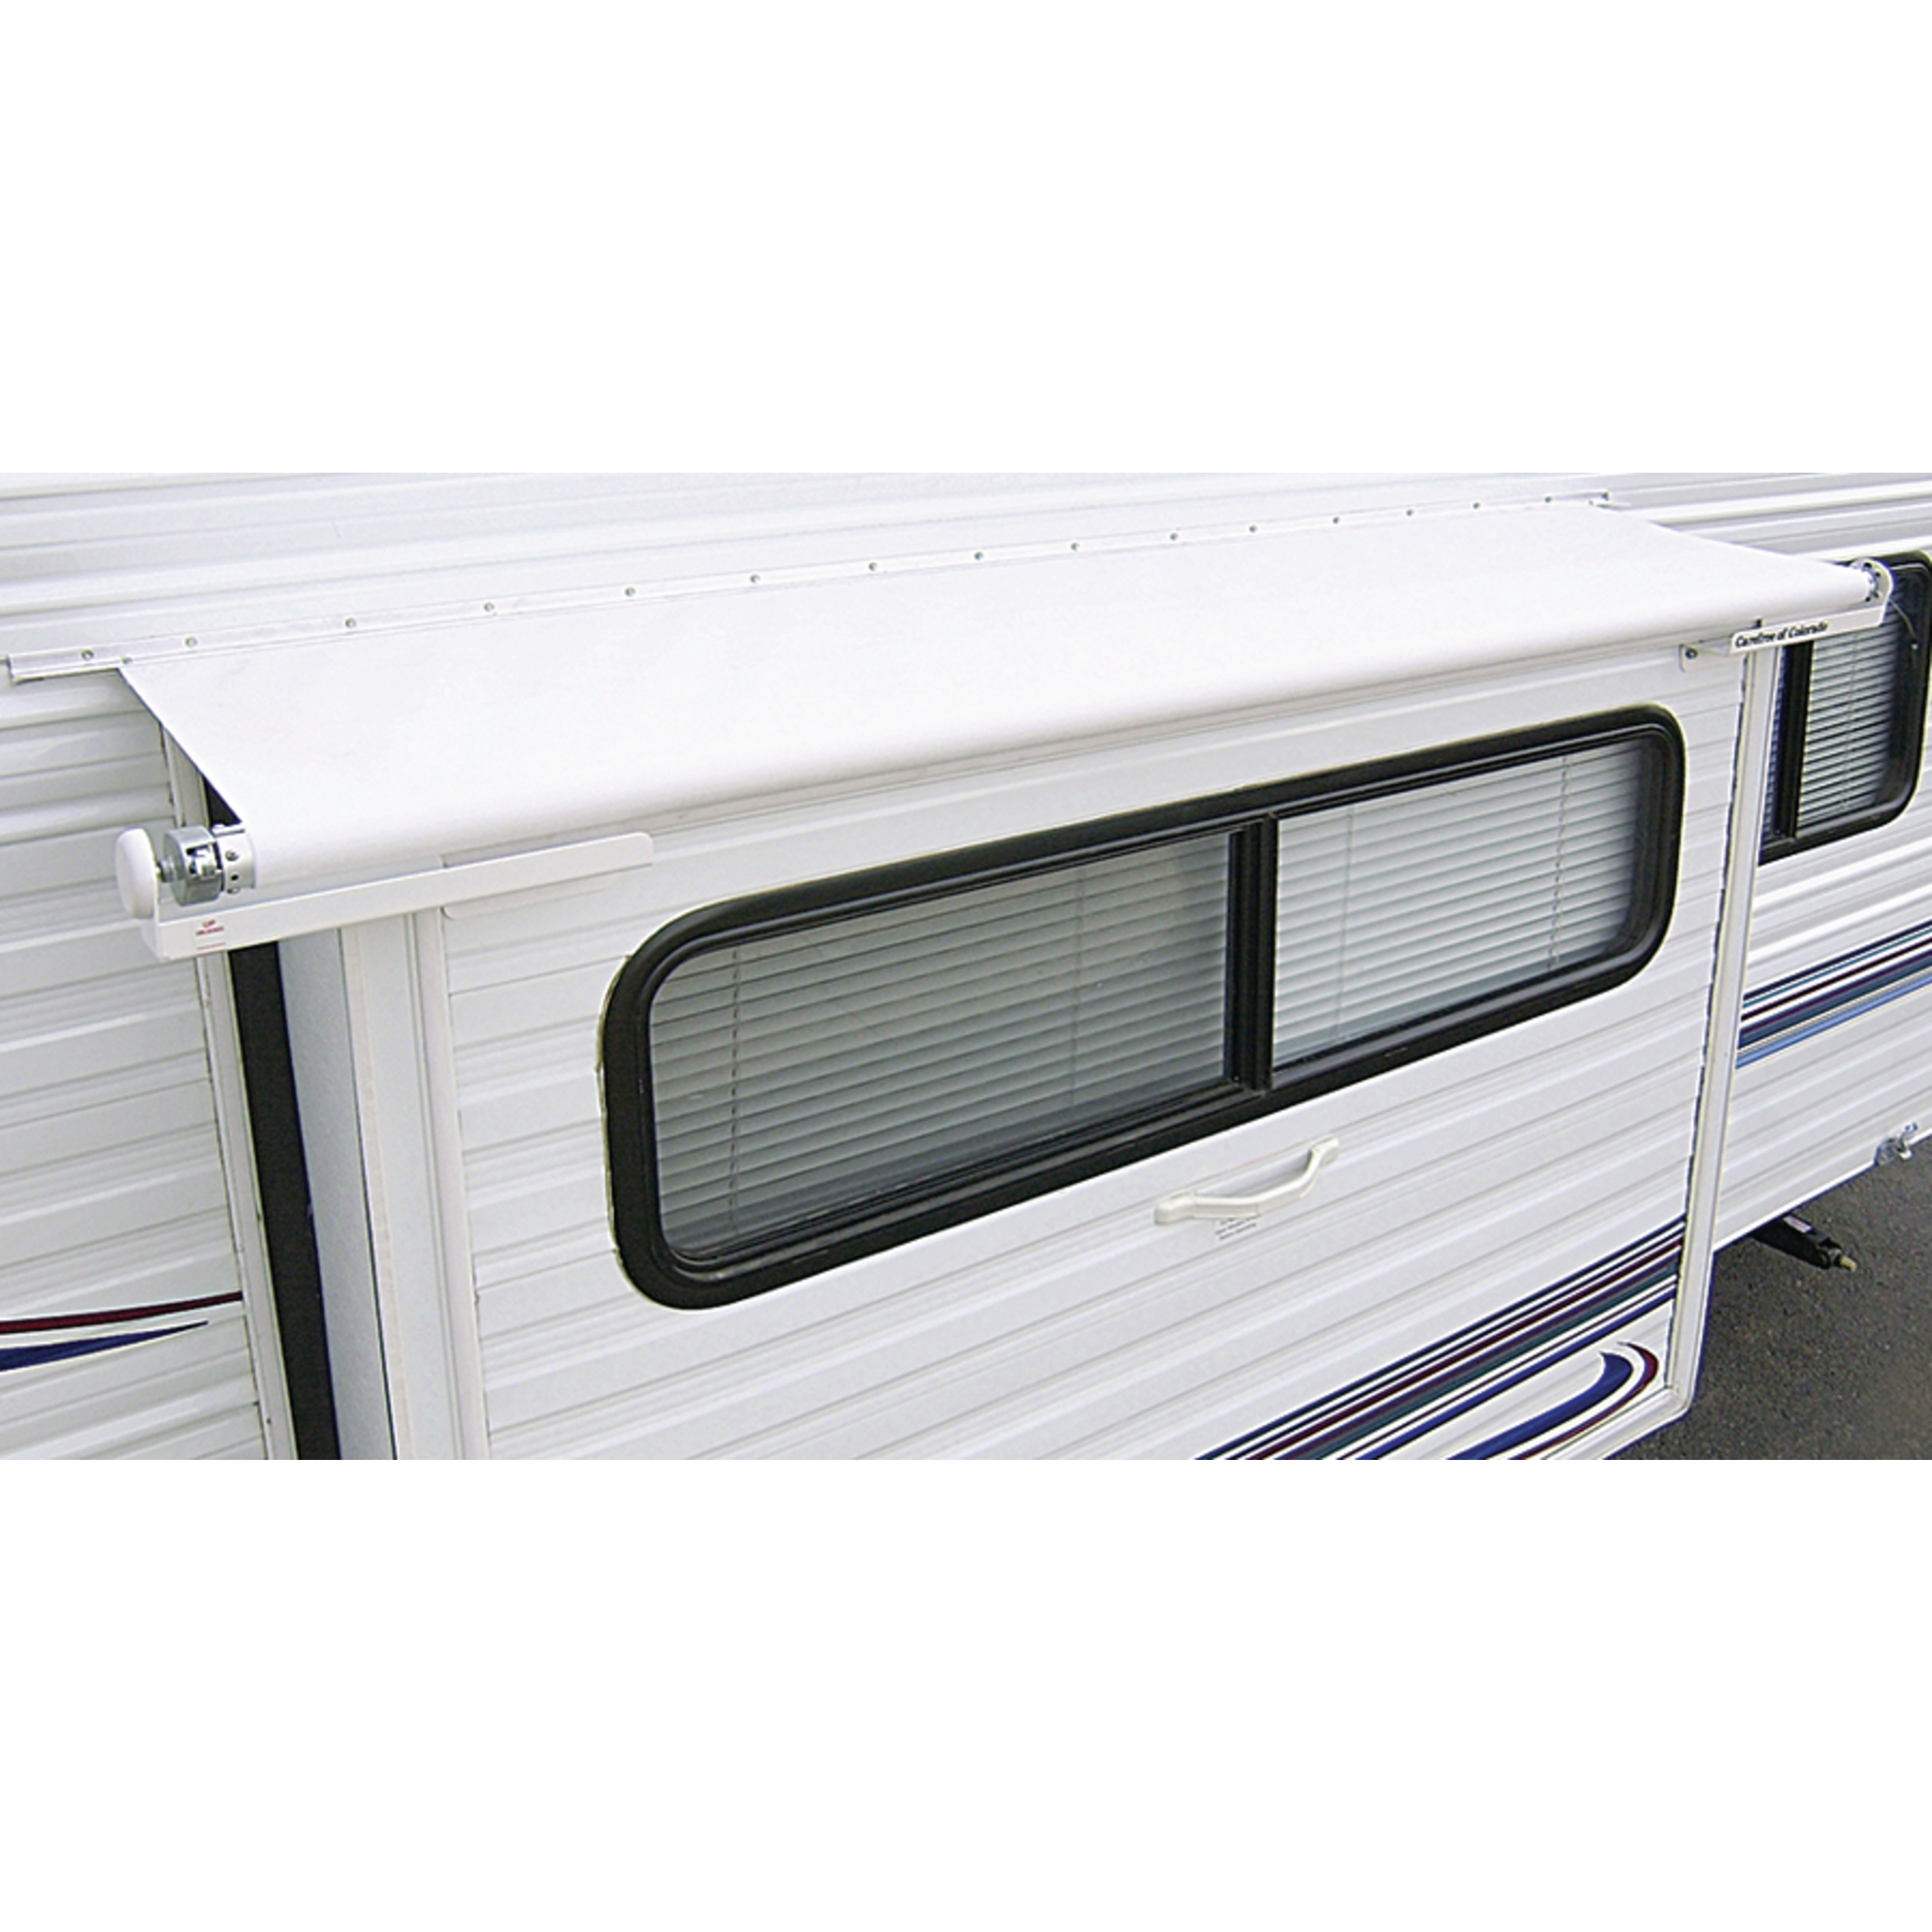 "Carefree DG1460042 White RV Slideout Awning Replacement Fabric - 146"" Canopy Length"